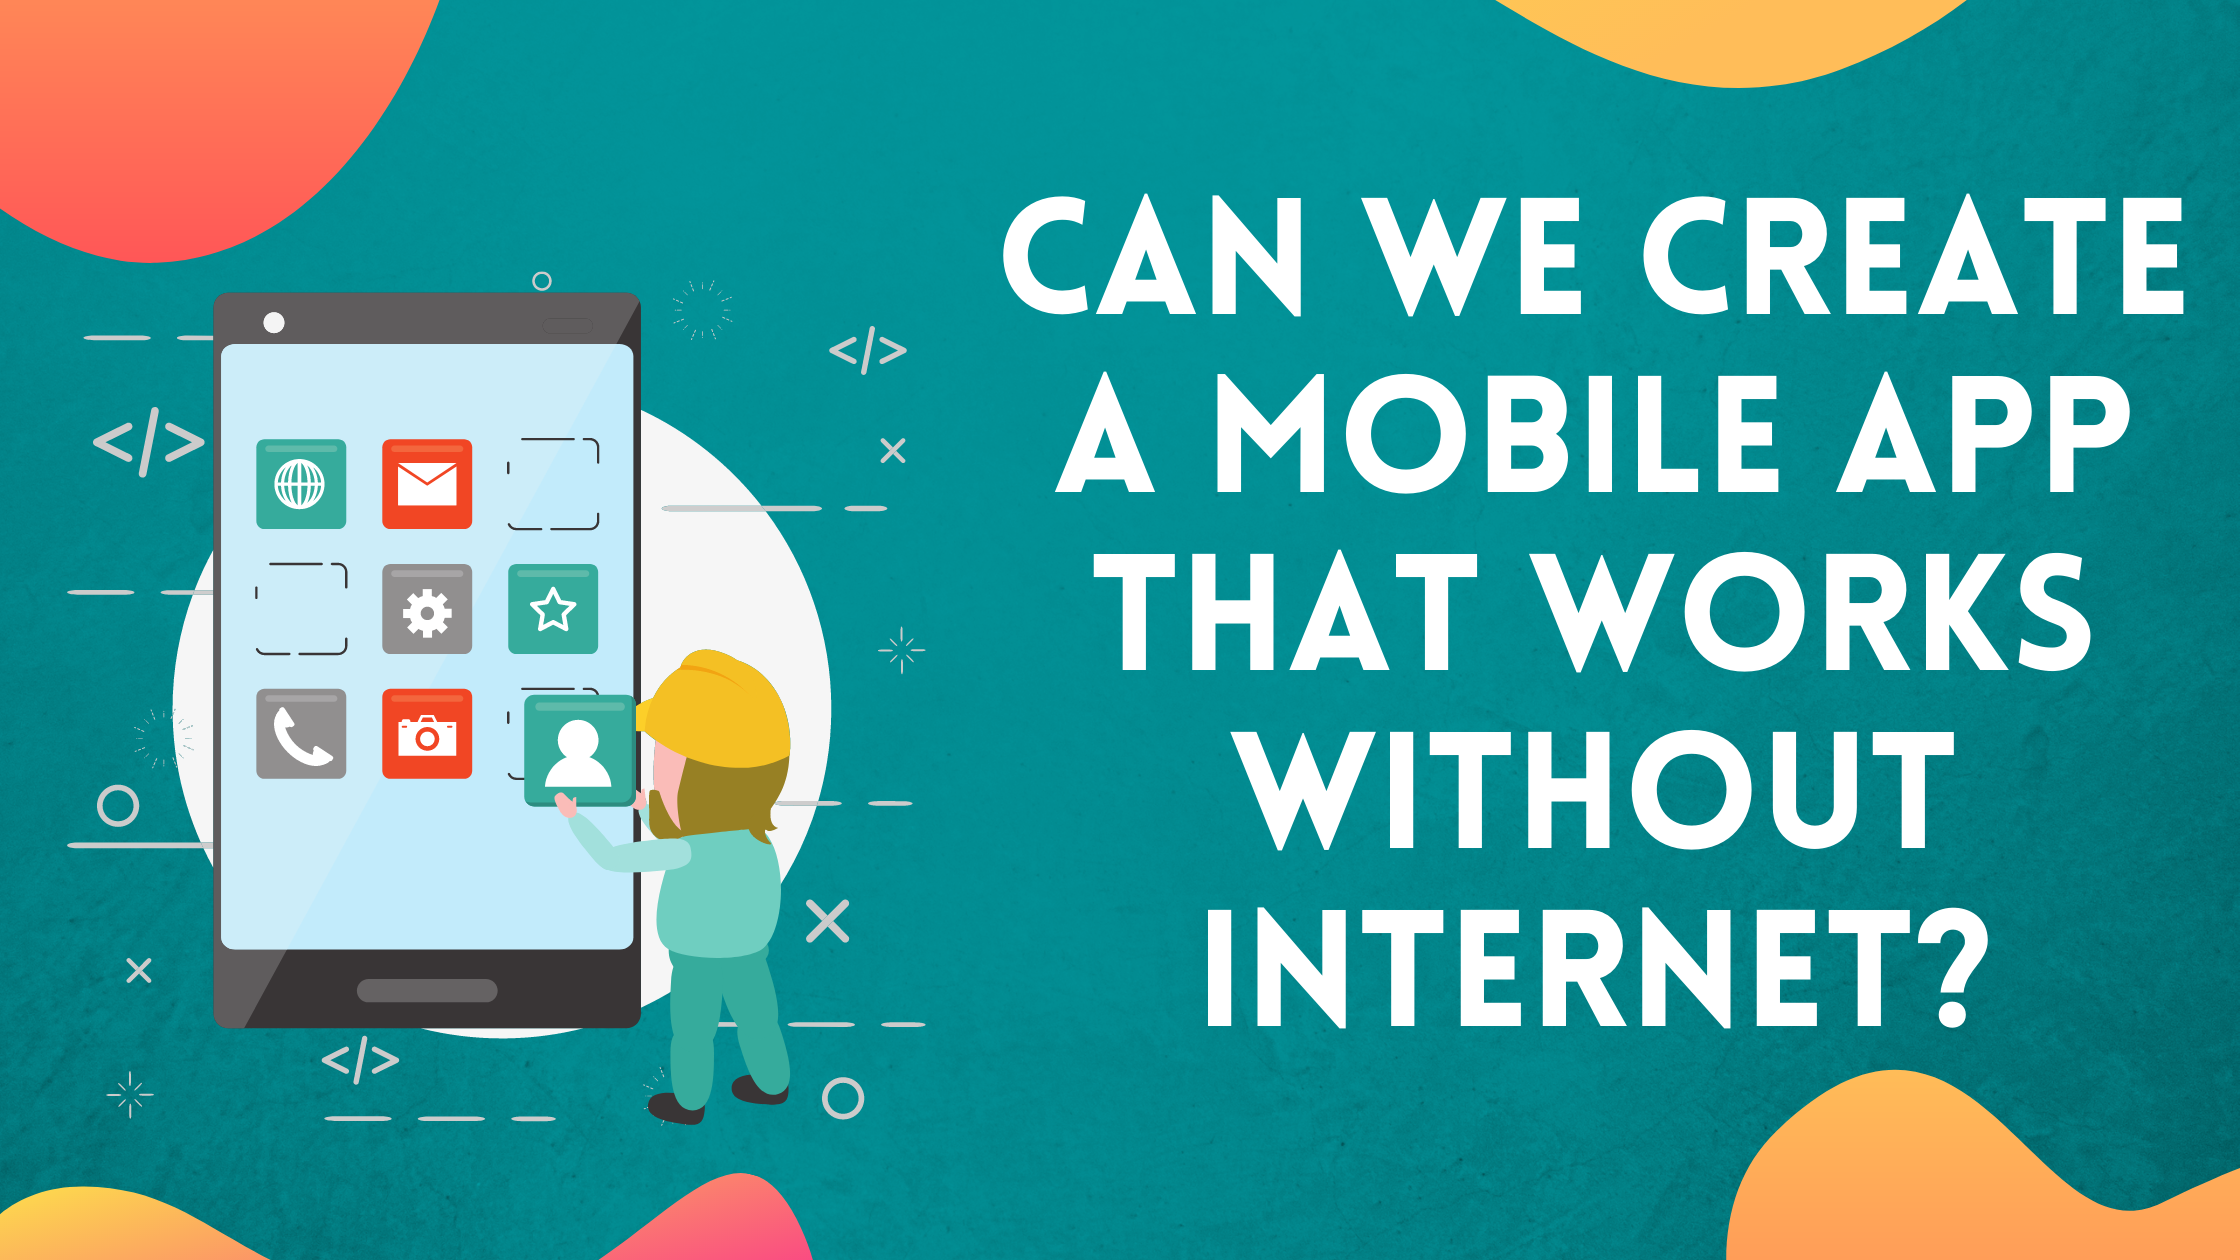 Mobile-app-that-works-without-internet